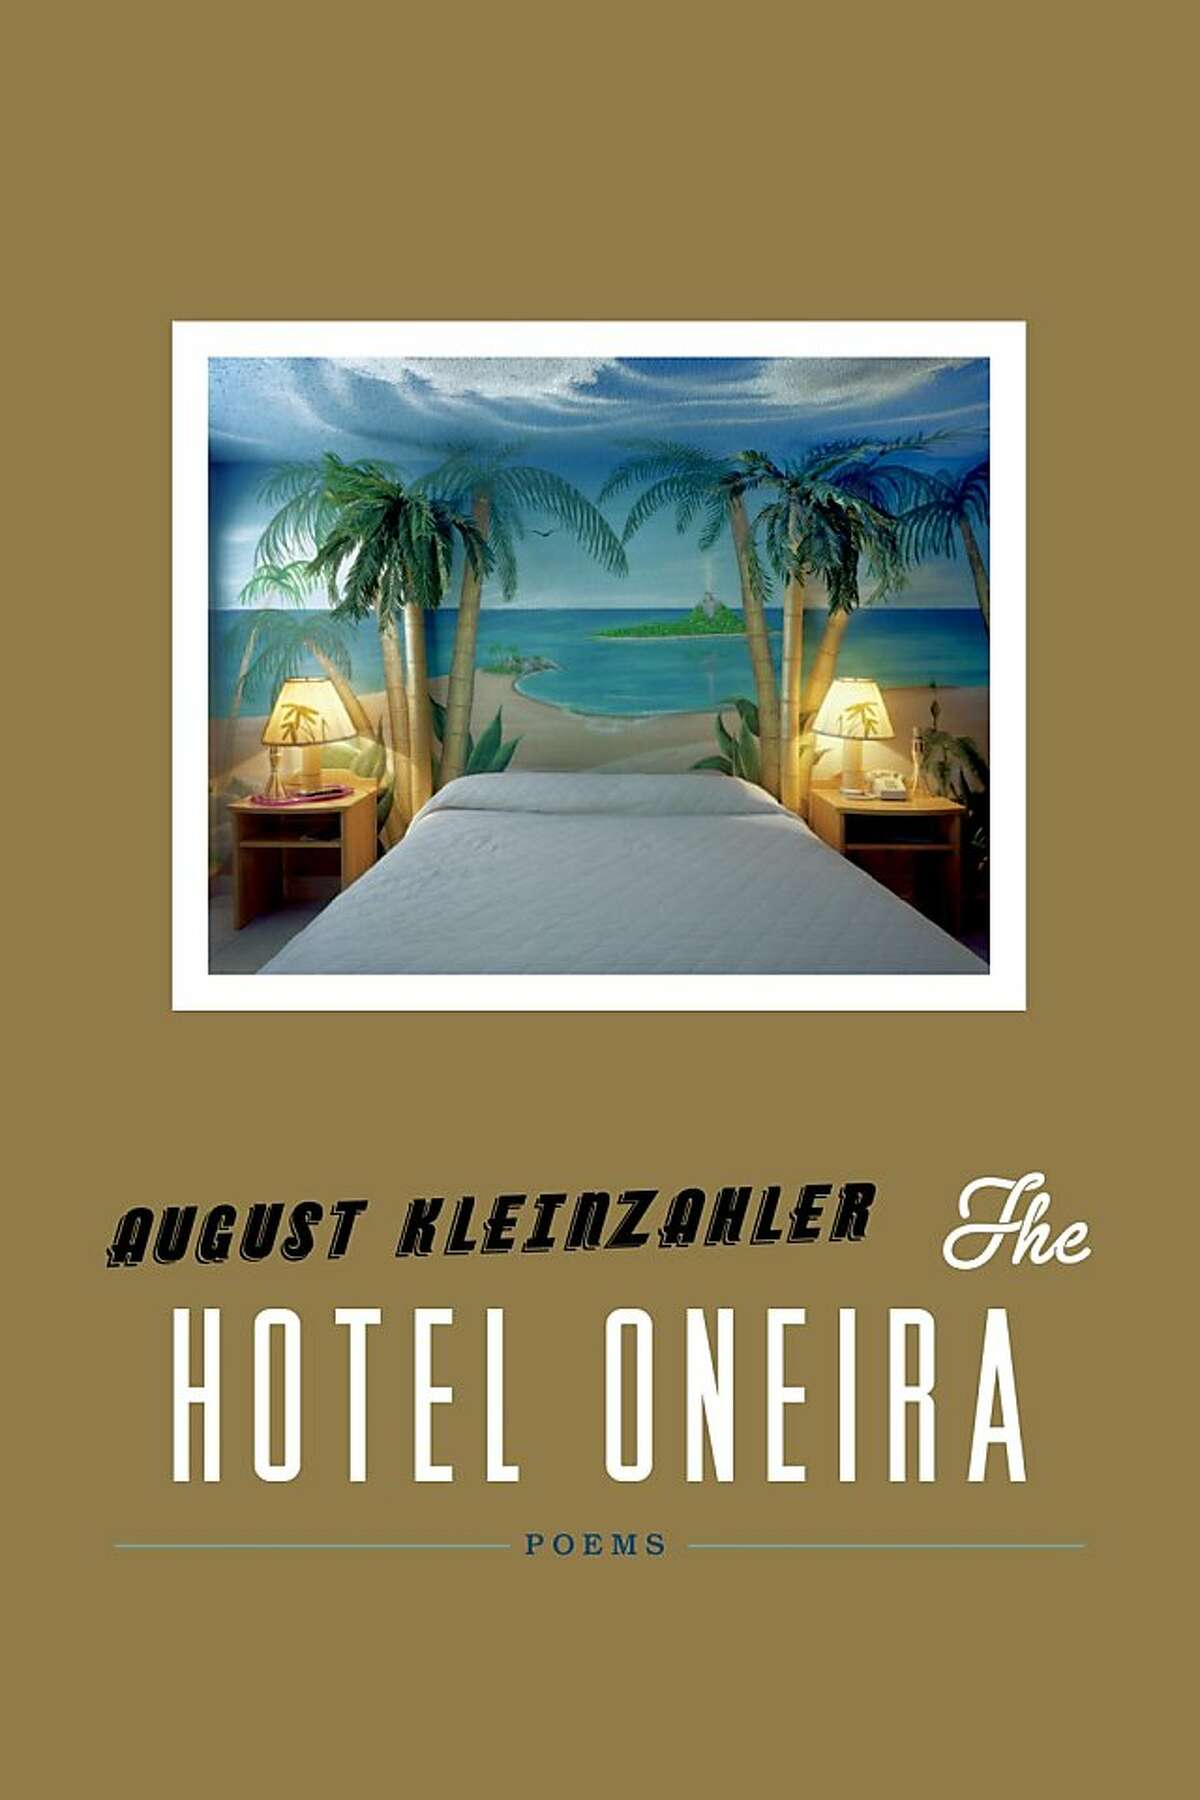 The Hotel Oneira, by August Kleinzahler